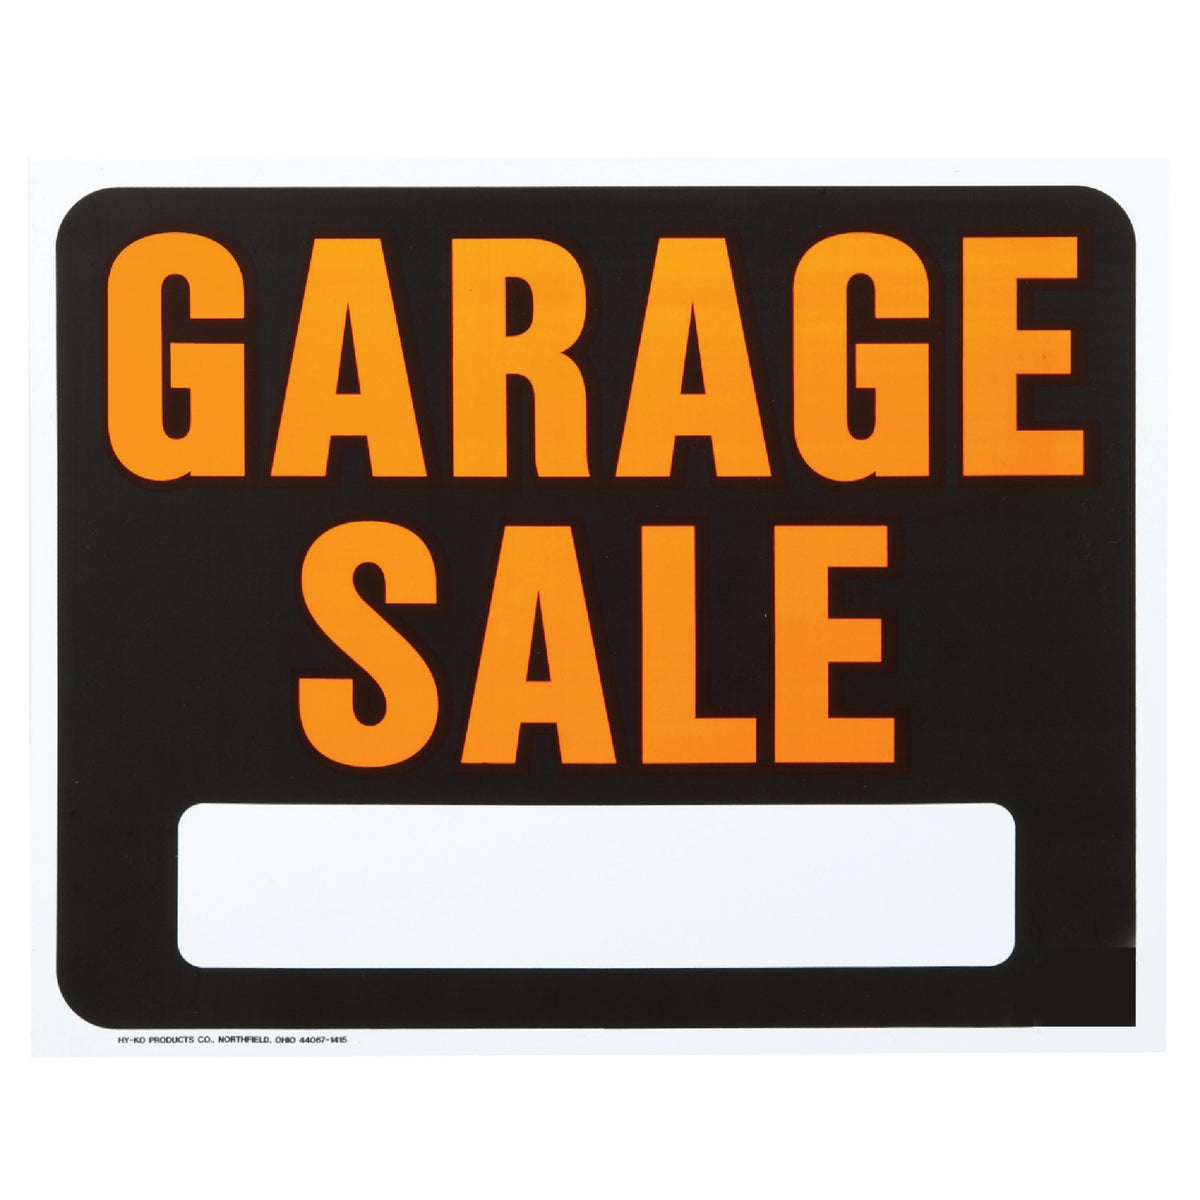 15X19 GARAGE SALE SIGN - SP-110 by Hy Ko Prods Co